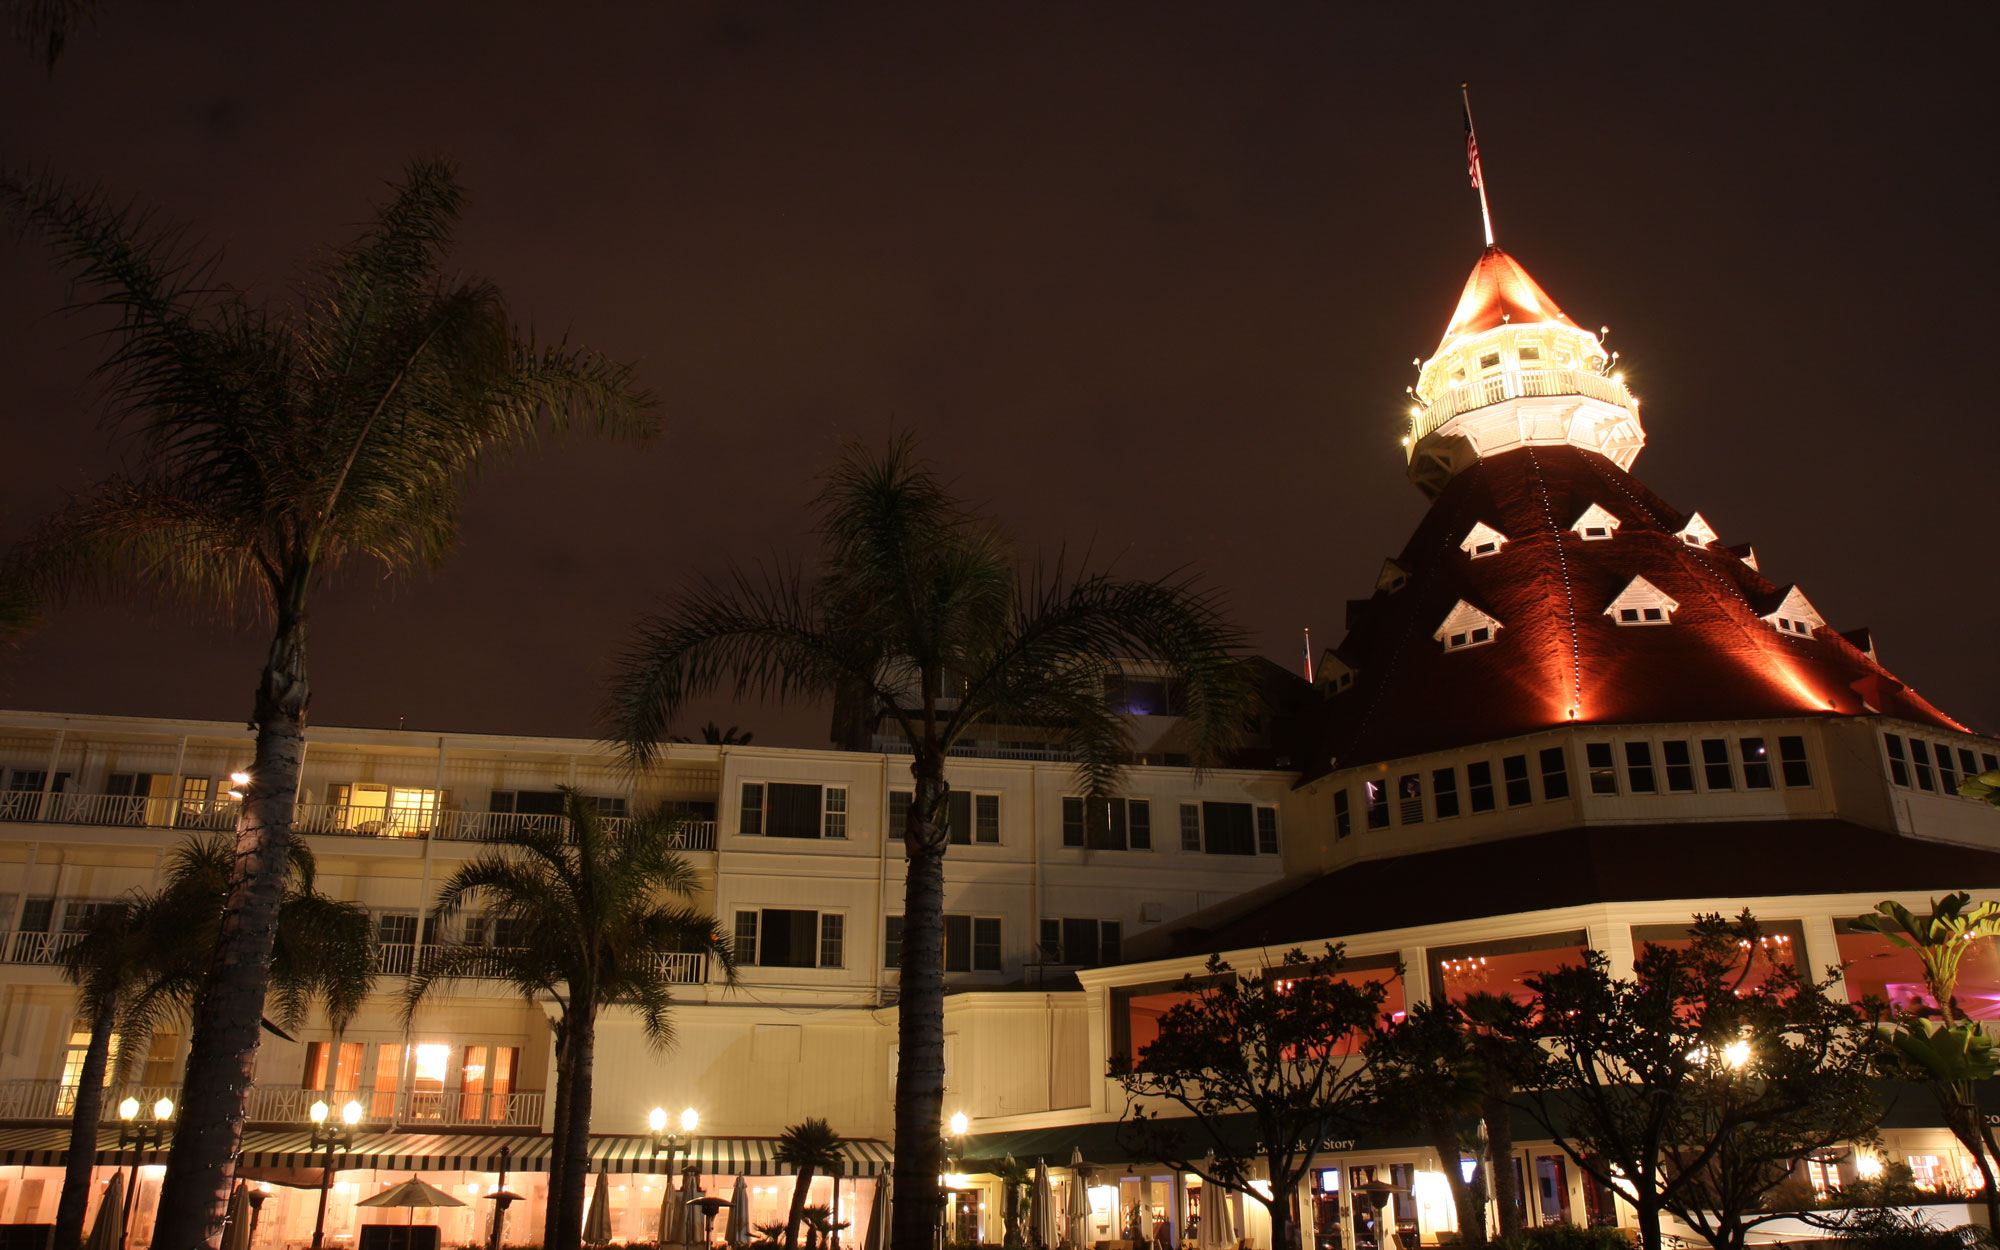 15 of the Most Beautiful (But Totally Haunted) Hotels in the World: The Hotel Del Coronado